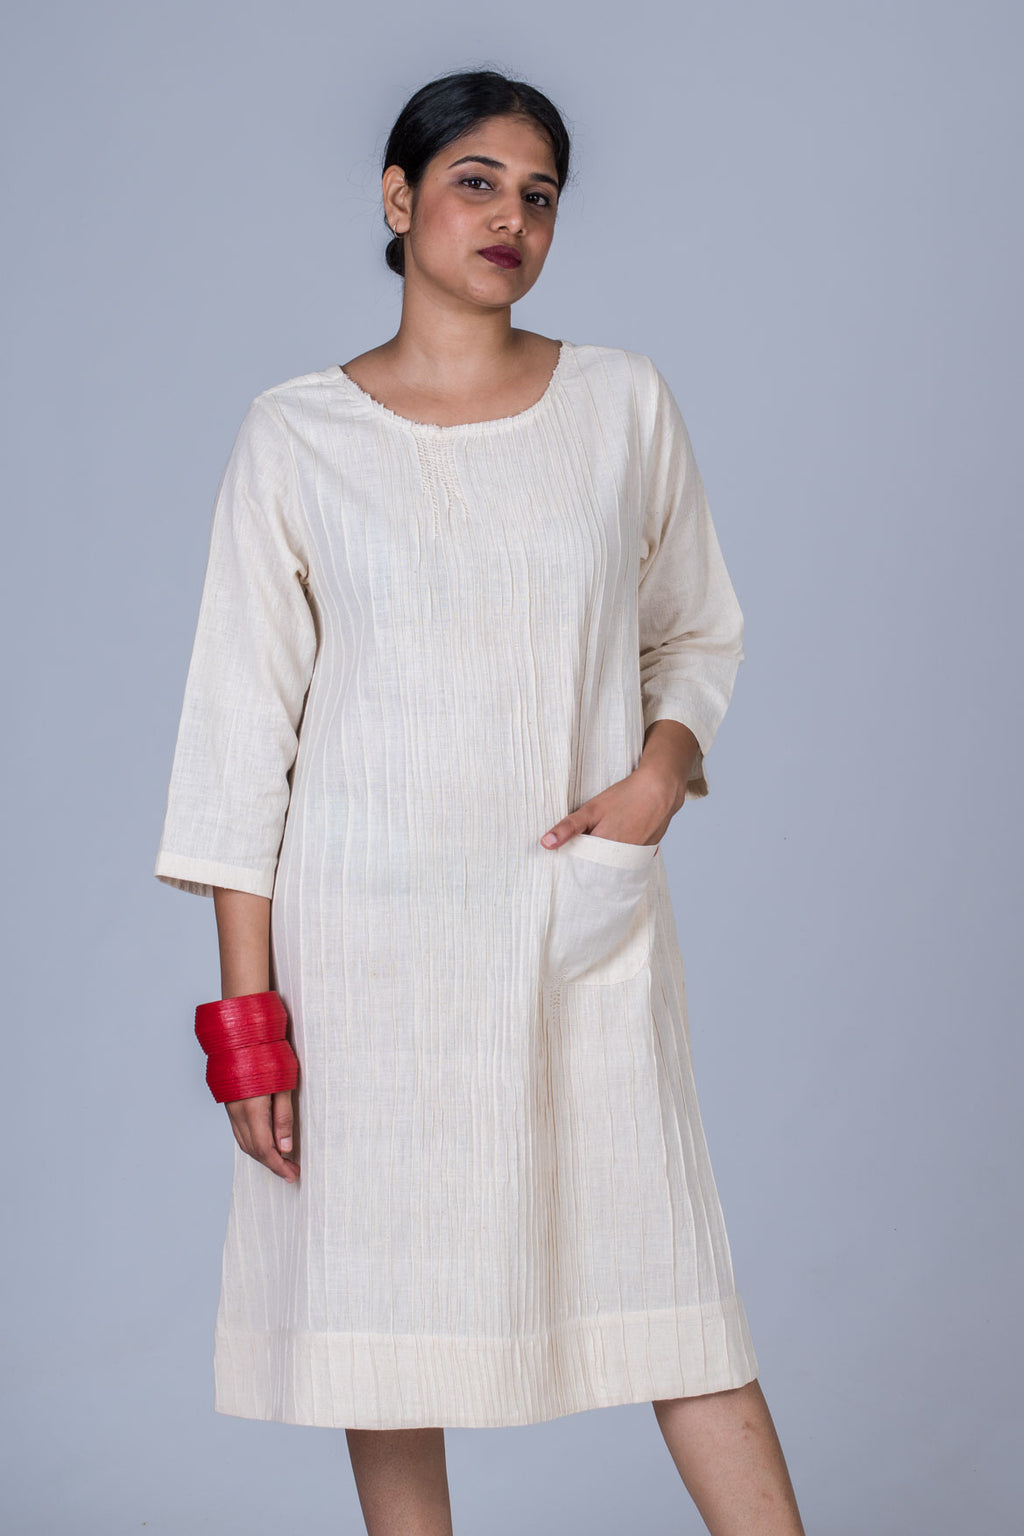 Off  White Desi Cotton Pintuck Dress - PARINA - Upasana Design Studio